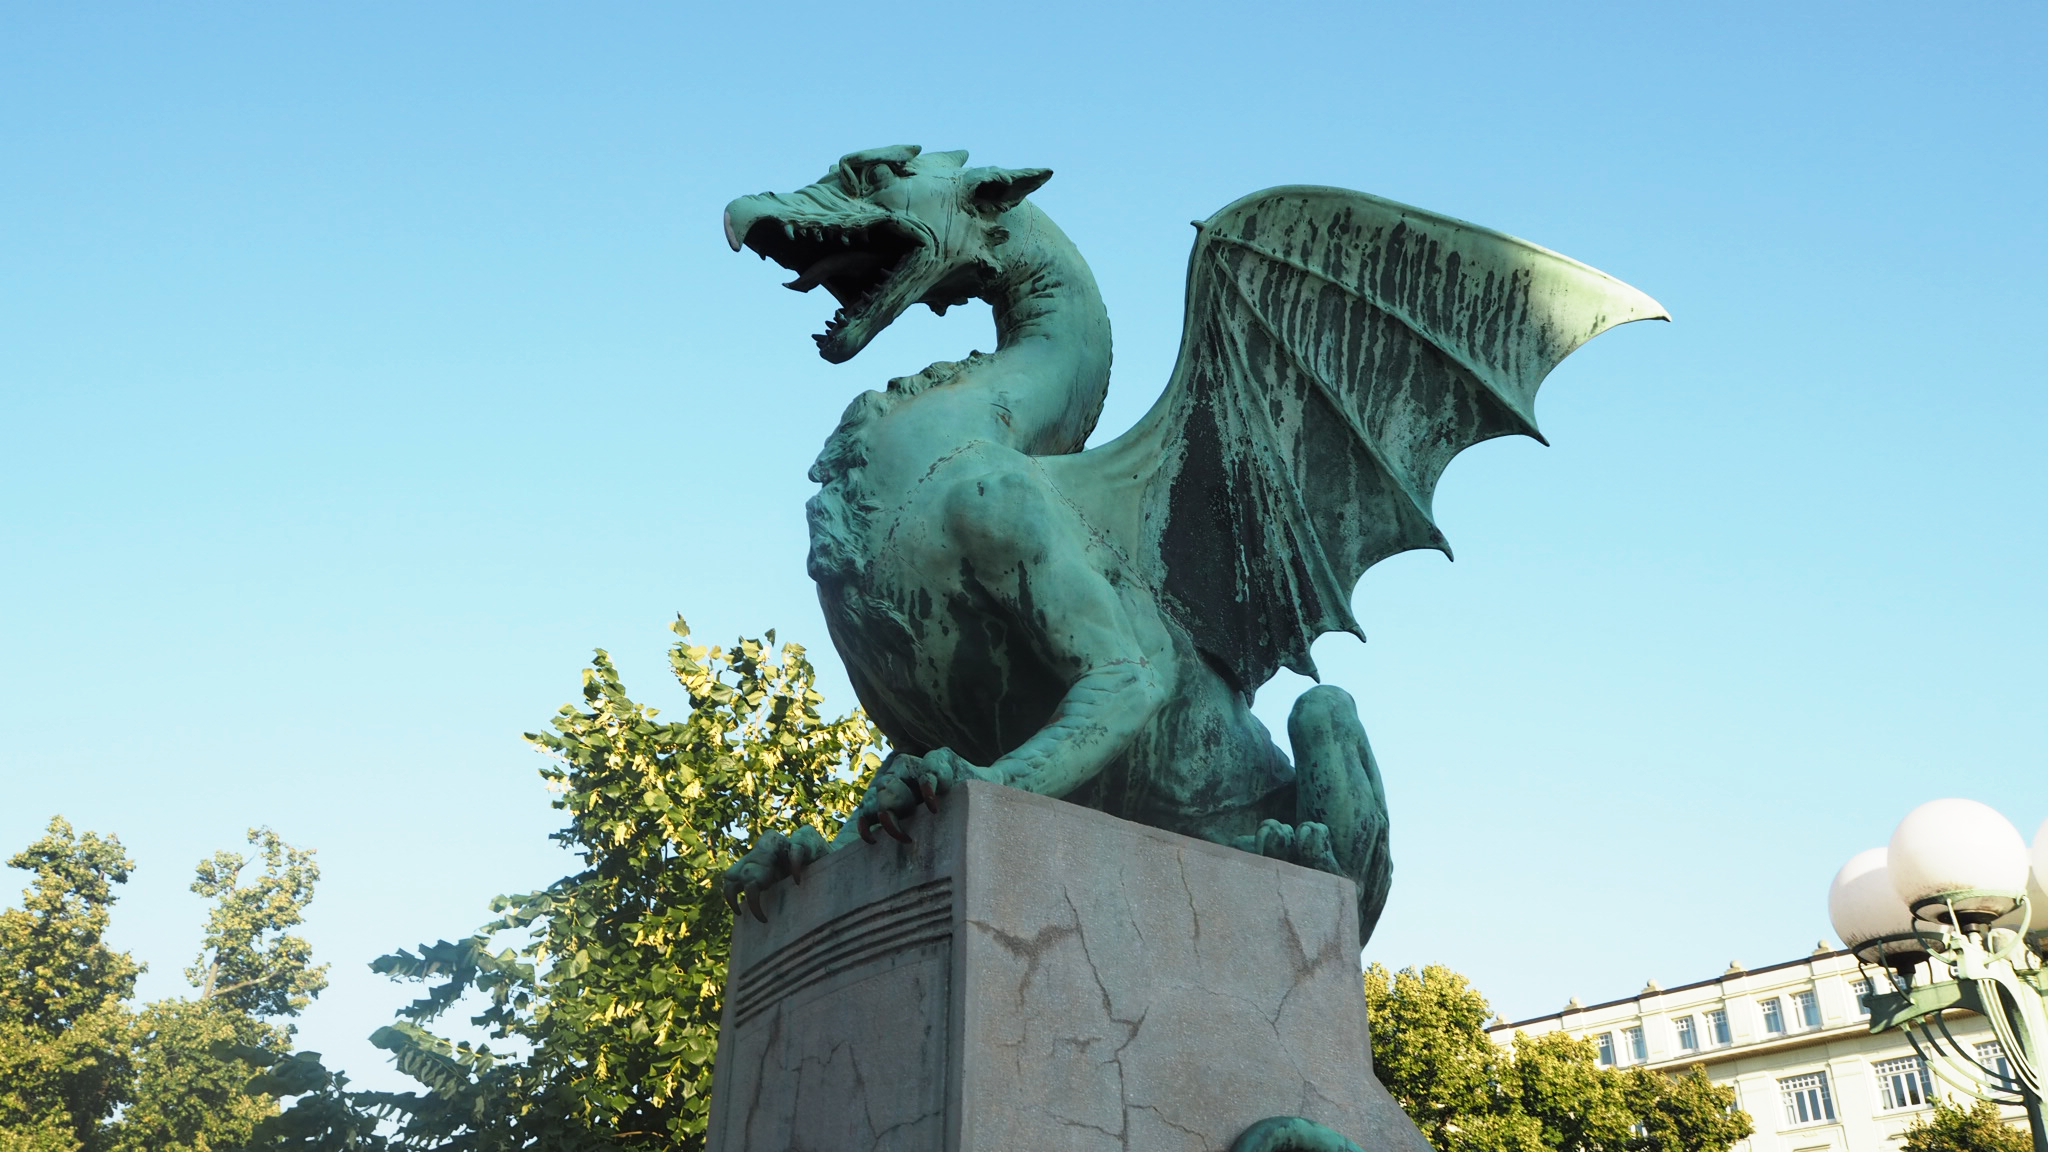 Dragon bridge on Ljubljana Slovenia